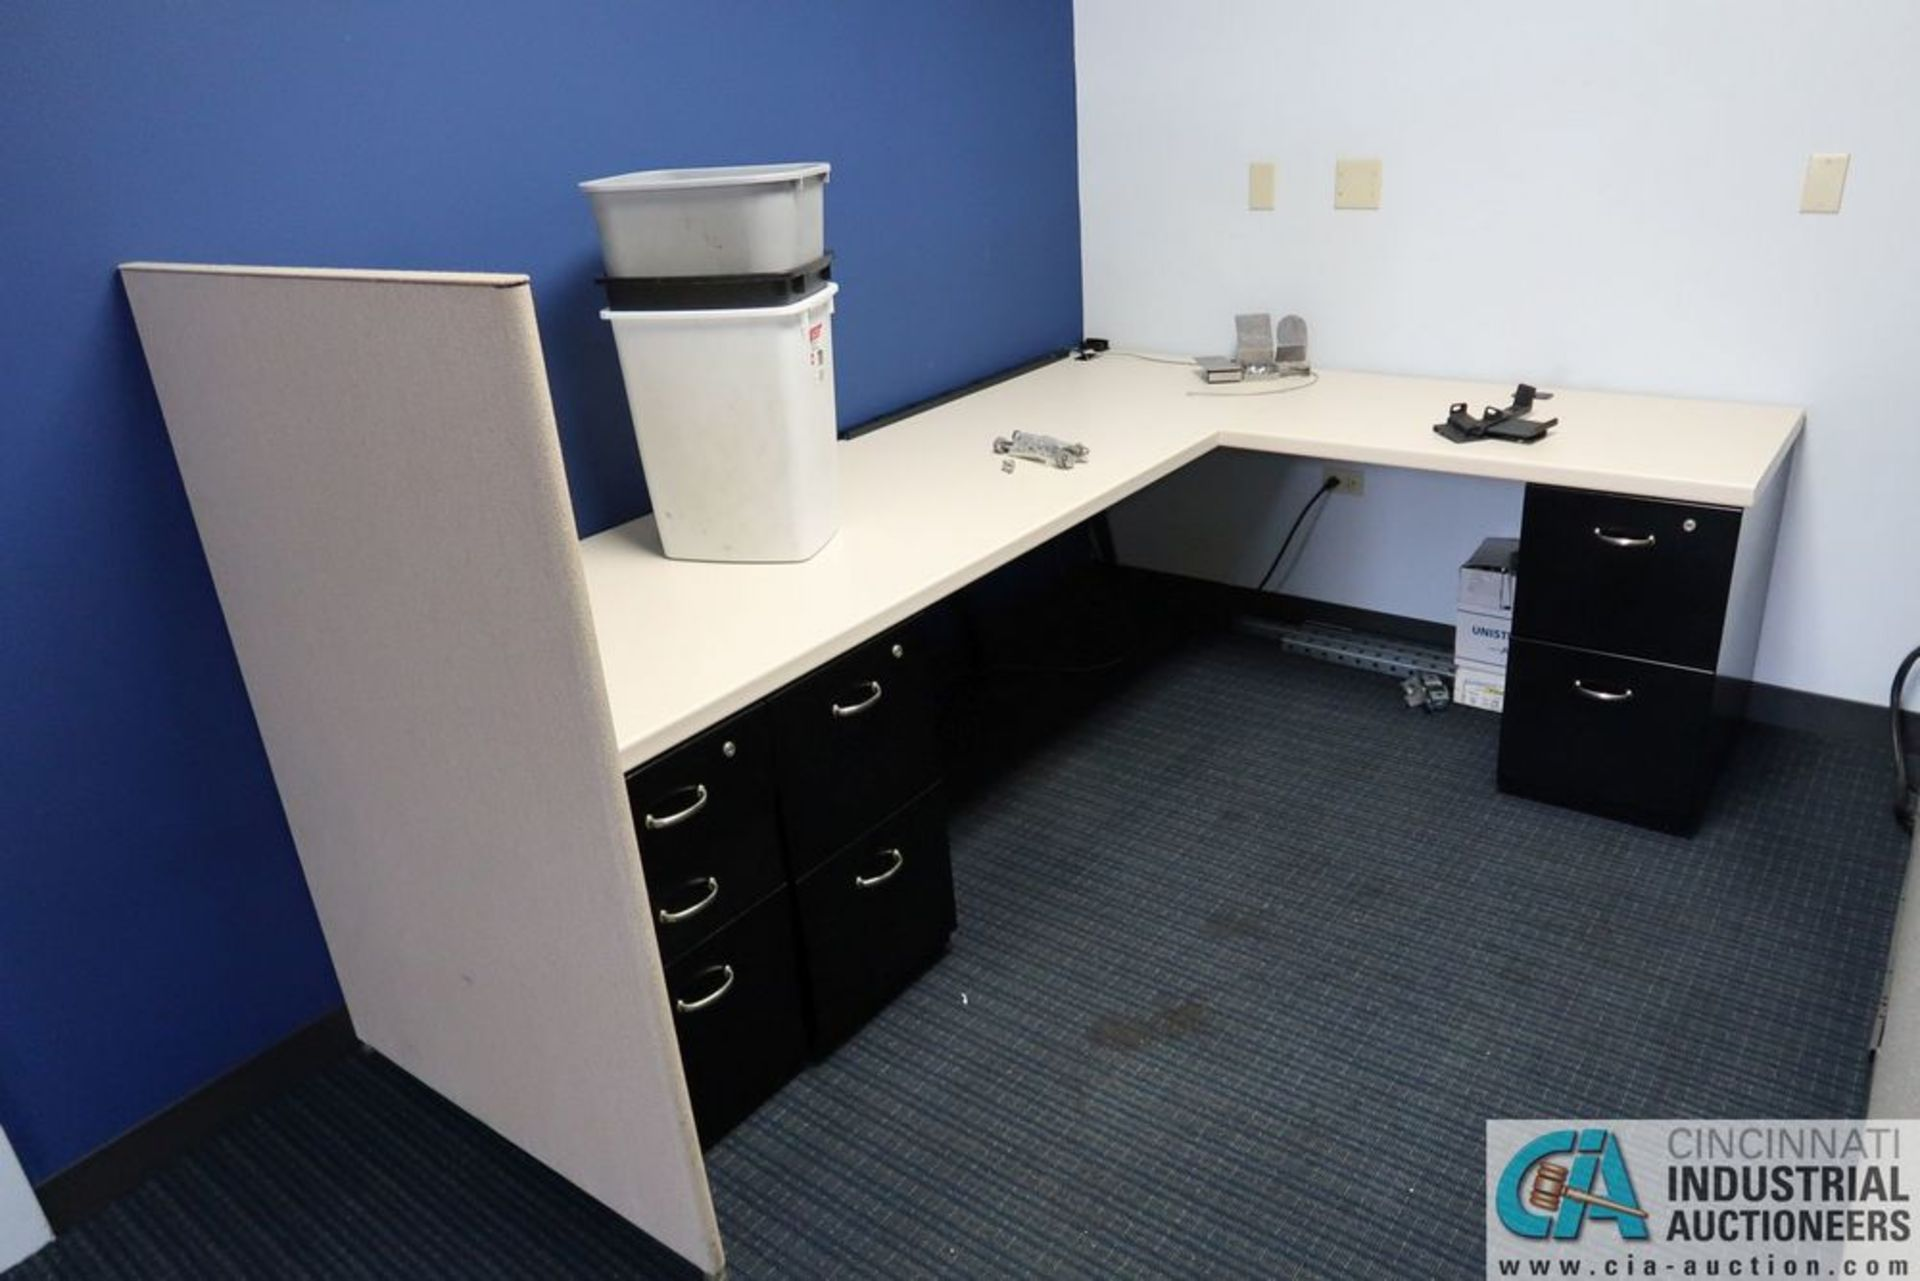 "(LOT) OFFICE CUBICLES, (2) 72"" X 72"", (2) 100"" X 92"", (2) 112"" X 96"", (1) 216"" X 72"" - Image 10 of 10"